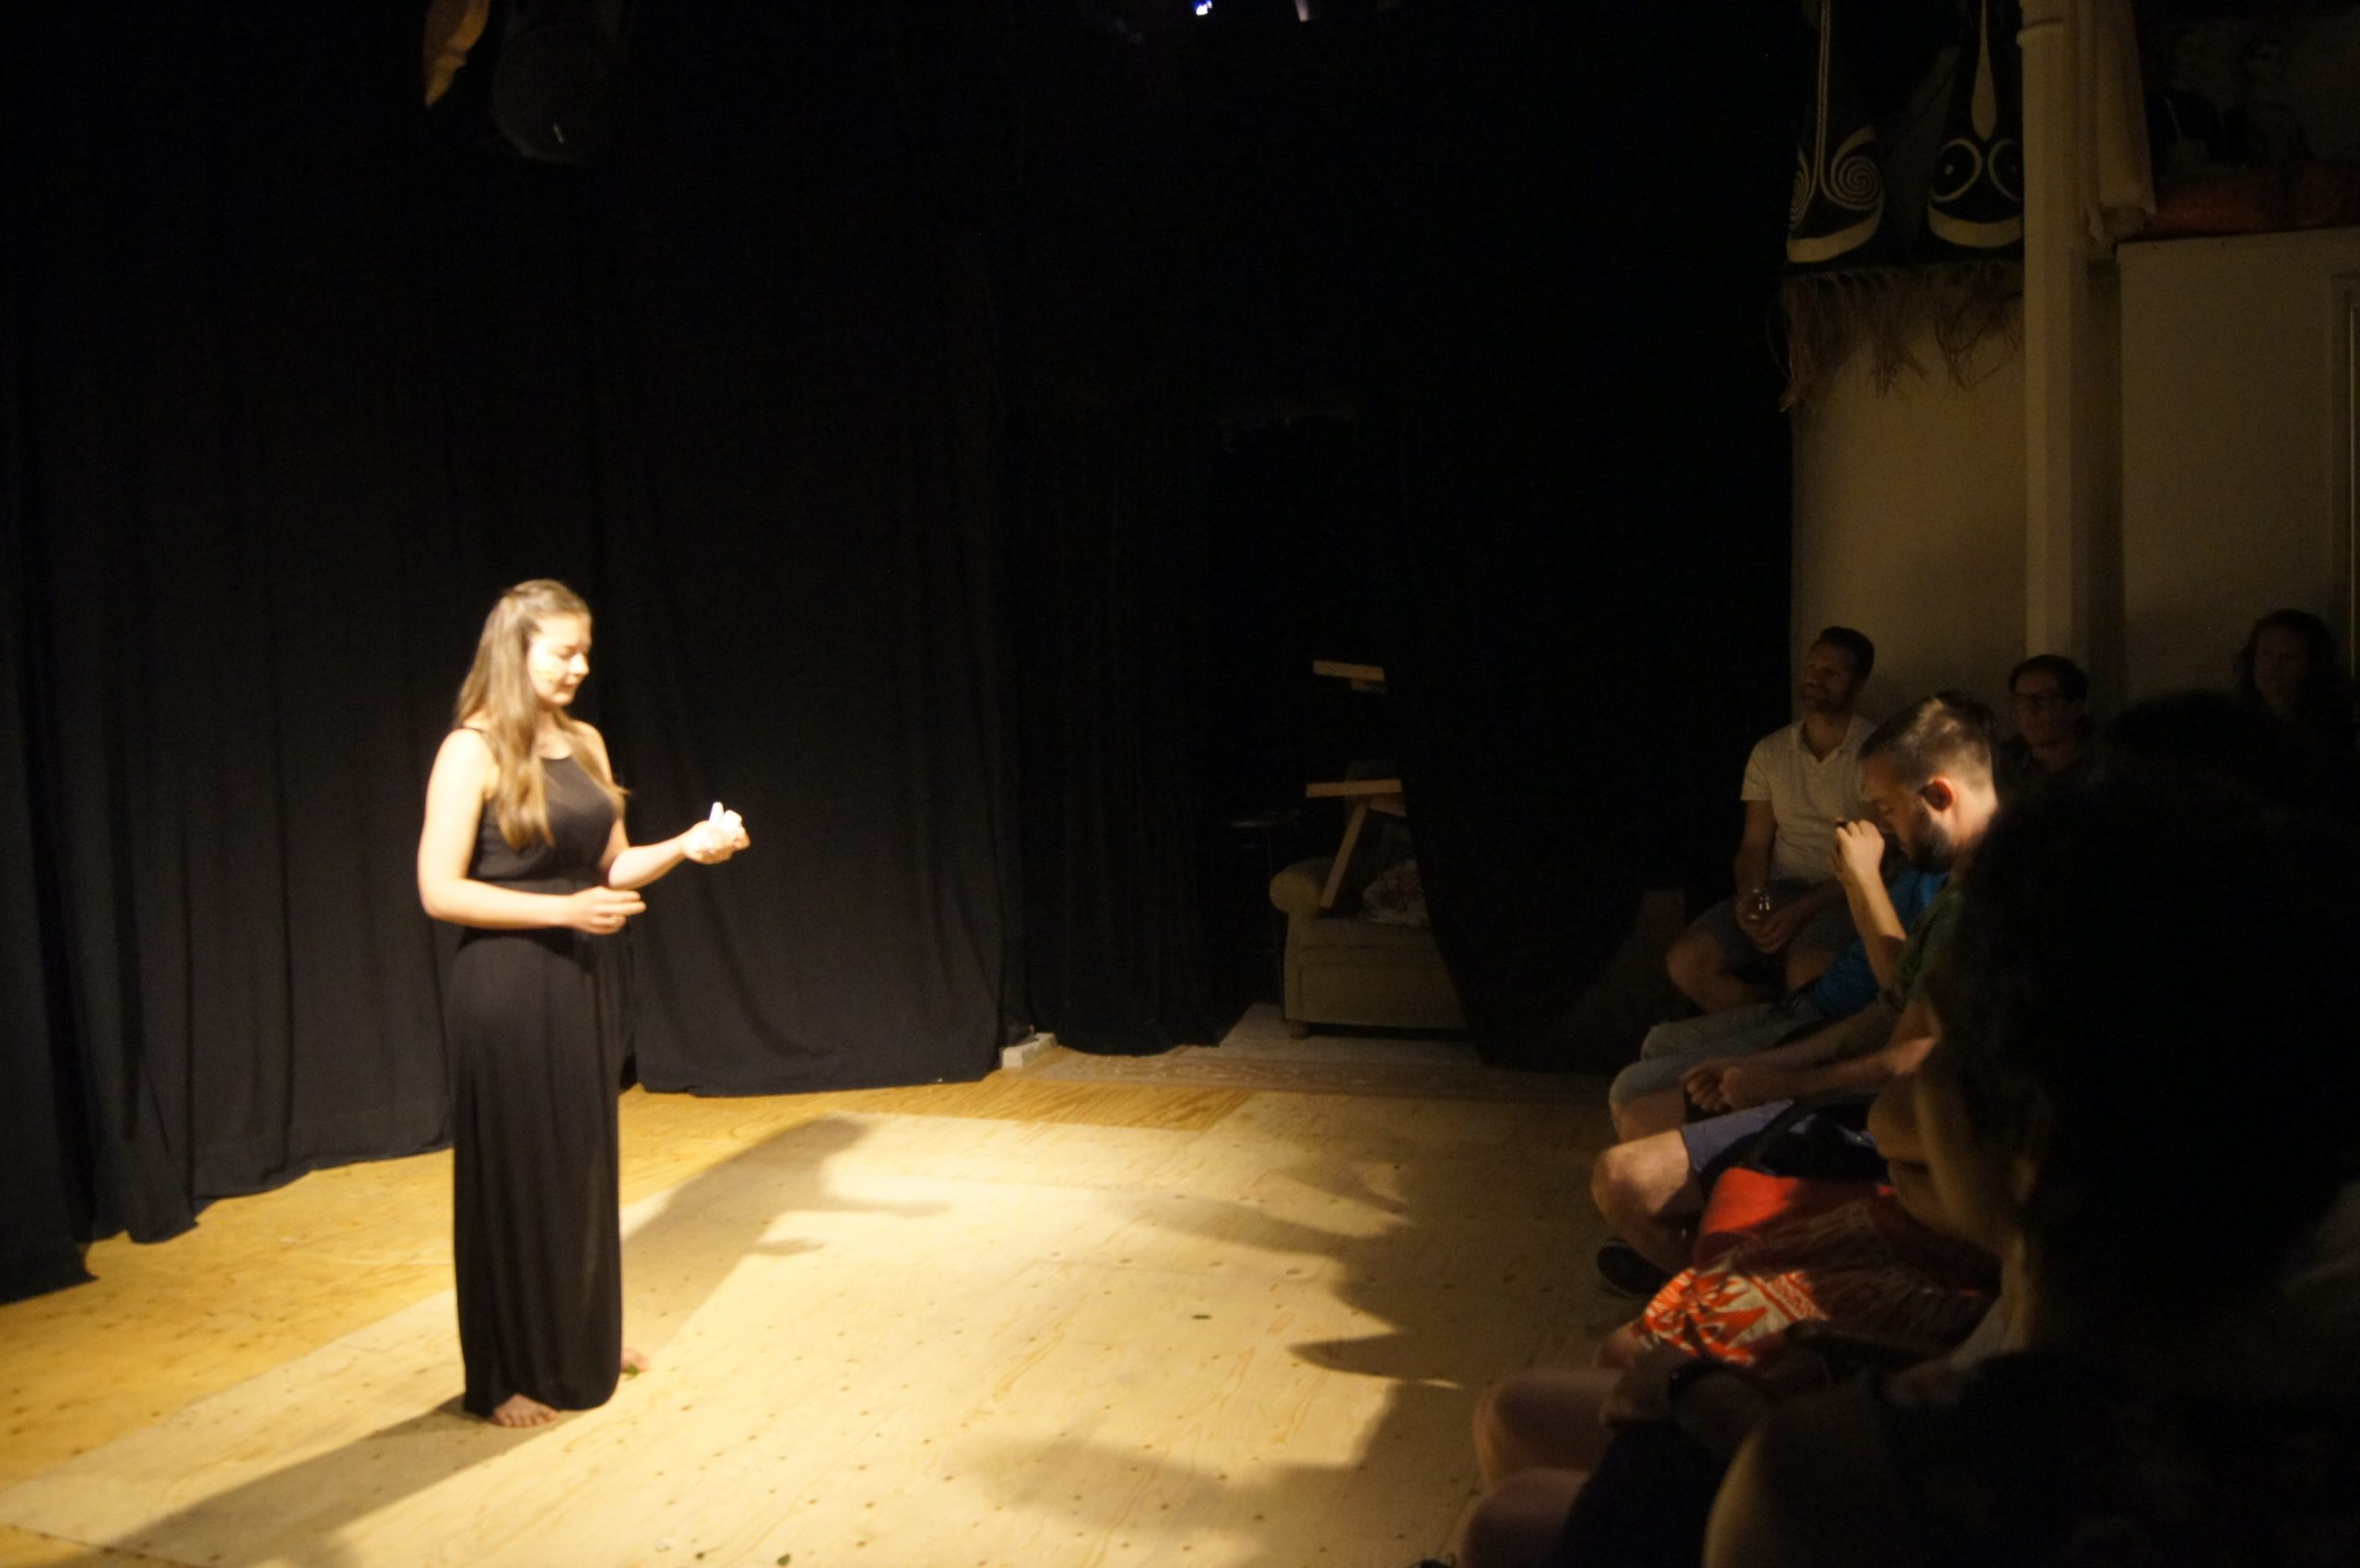 Theatre performance, woman on stage with a black dress, dark blonde hair, golden flakes on her right cheek, in front of audience. Black curtain behind her. She looks passionate